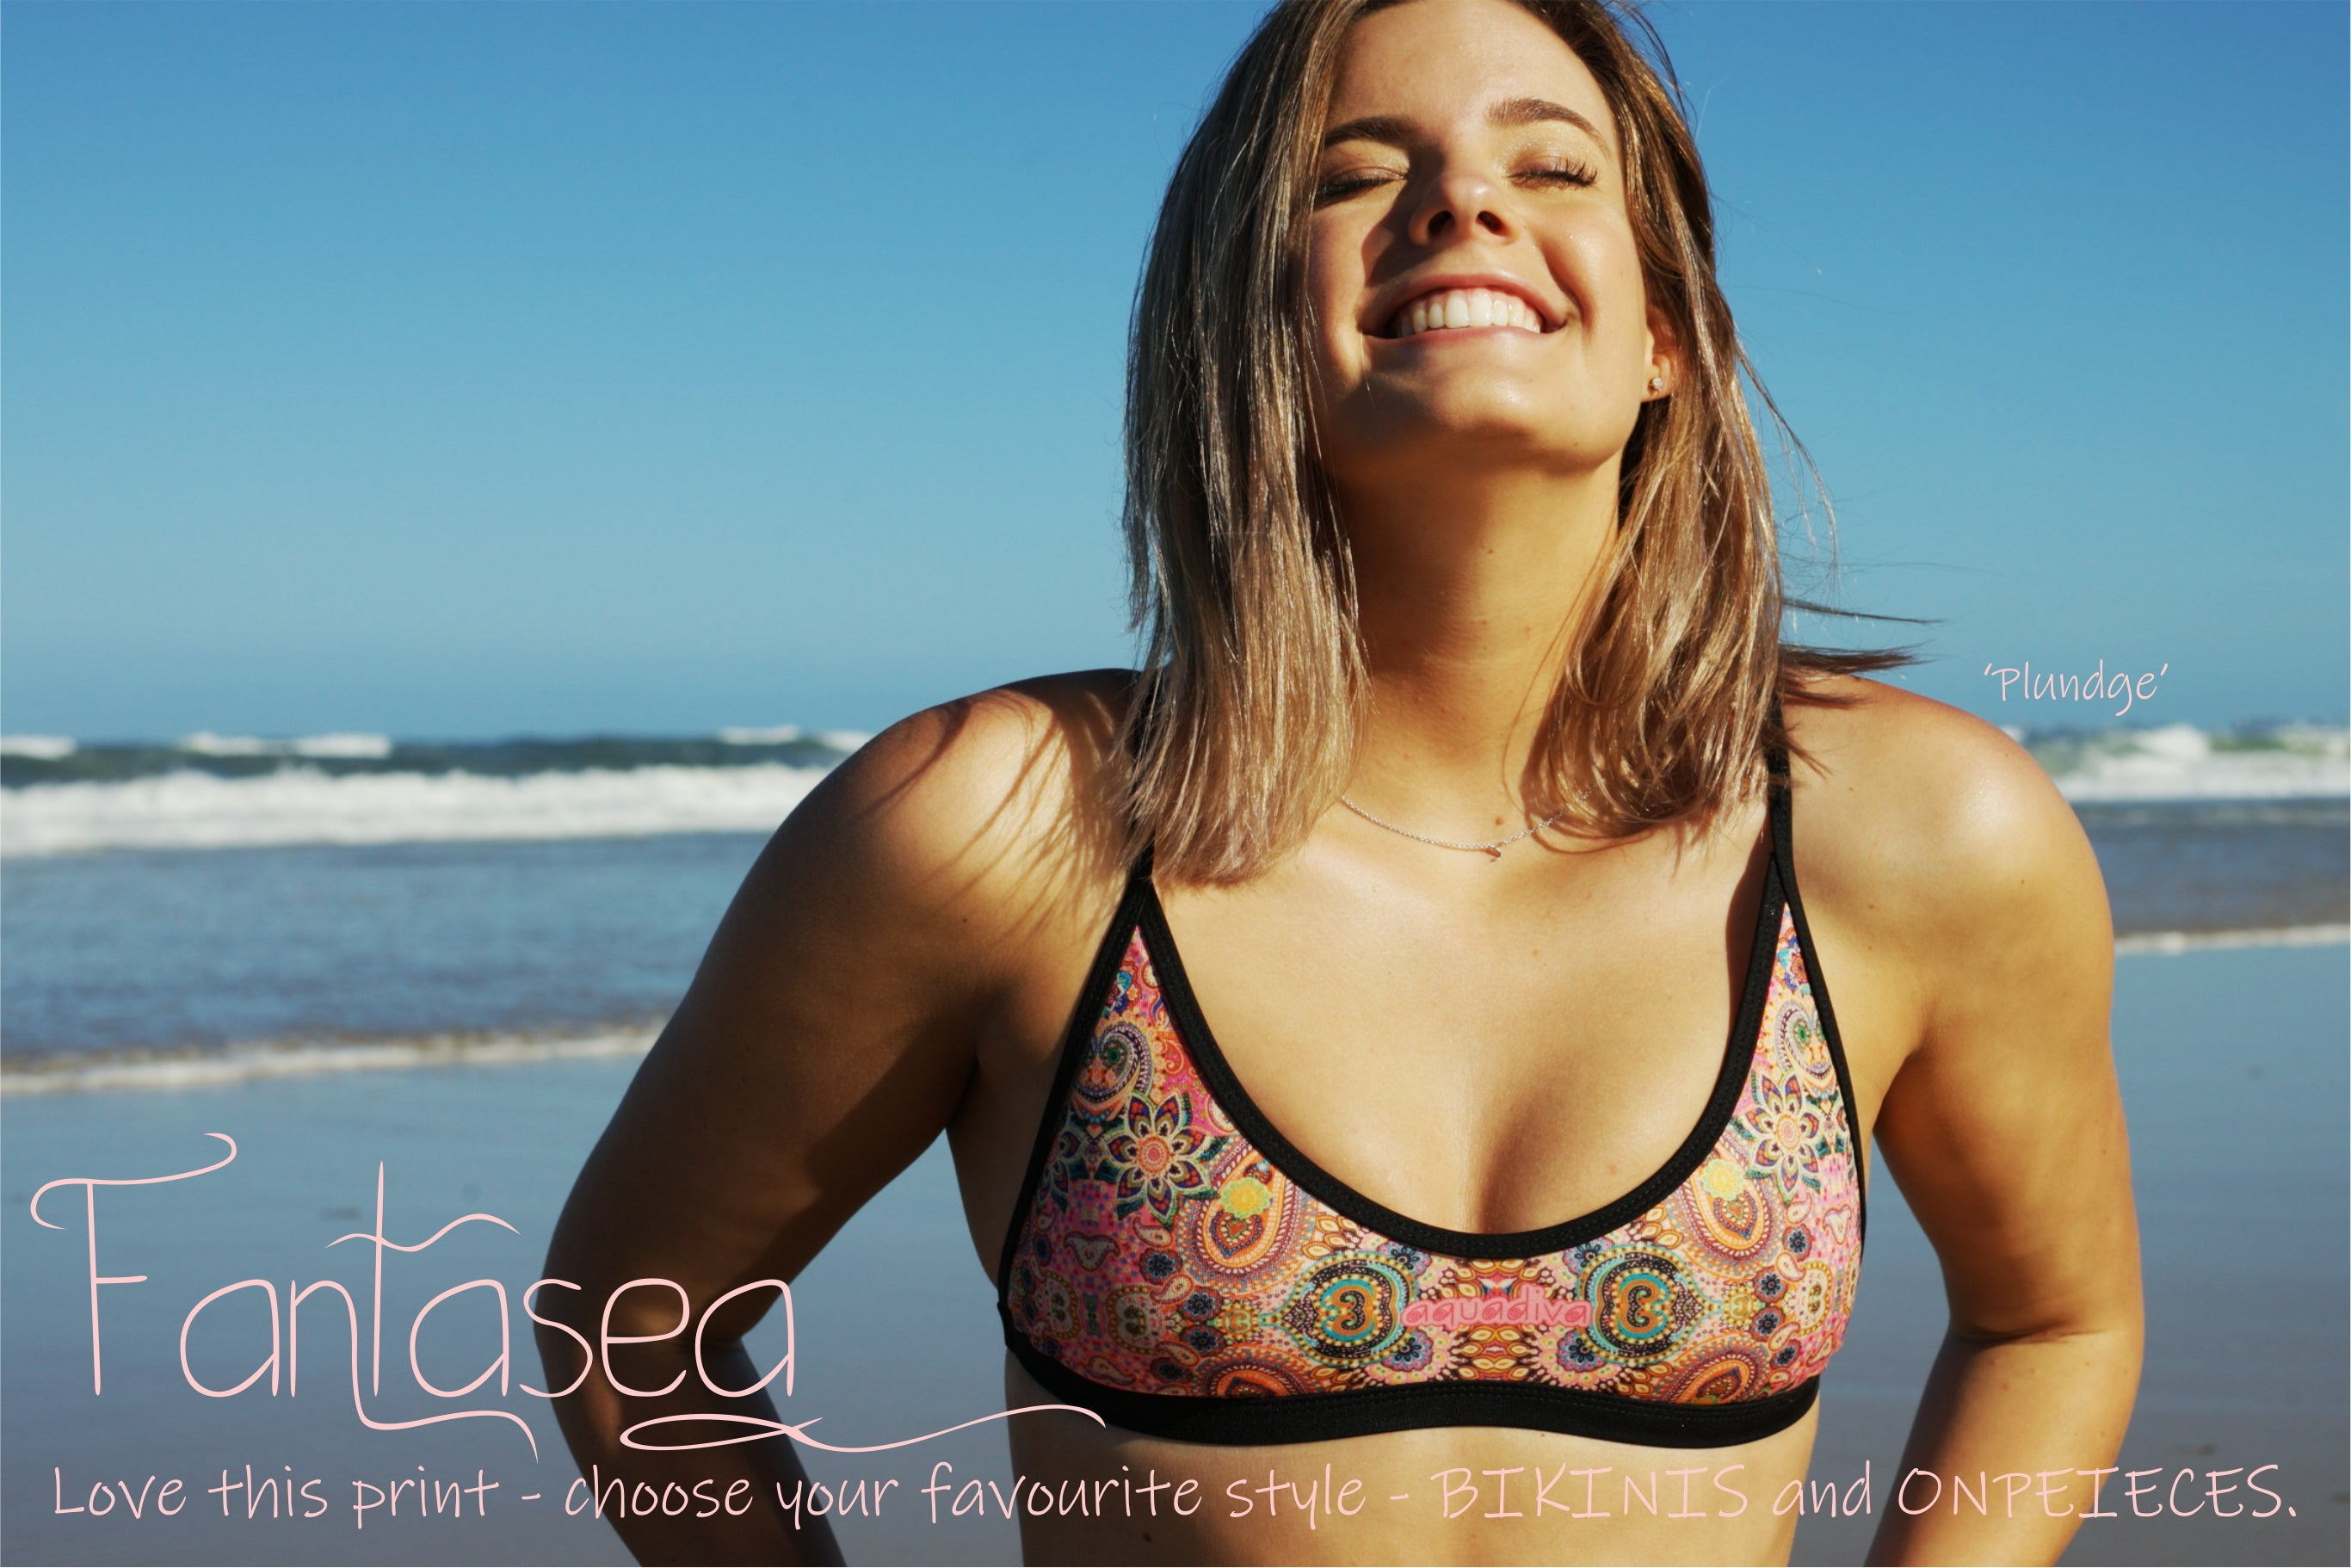 Fantasea - all styles in BIKINIS and ONEPIECES